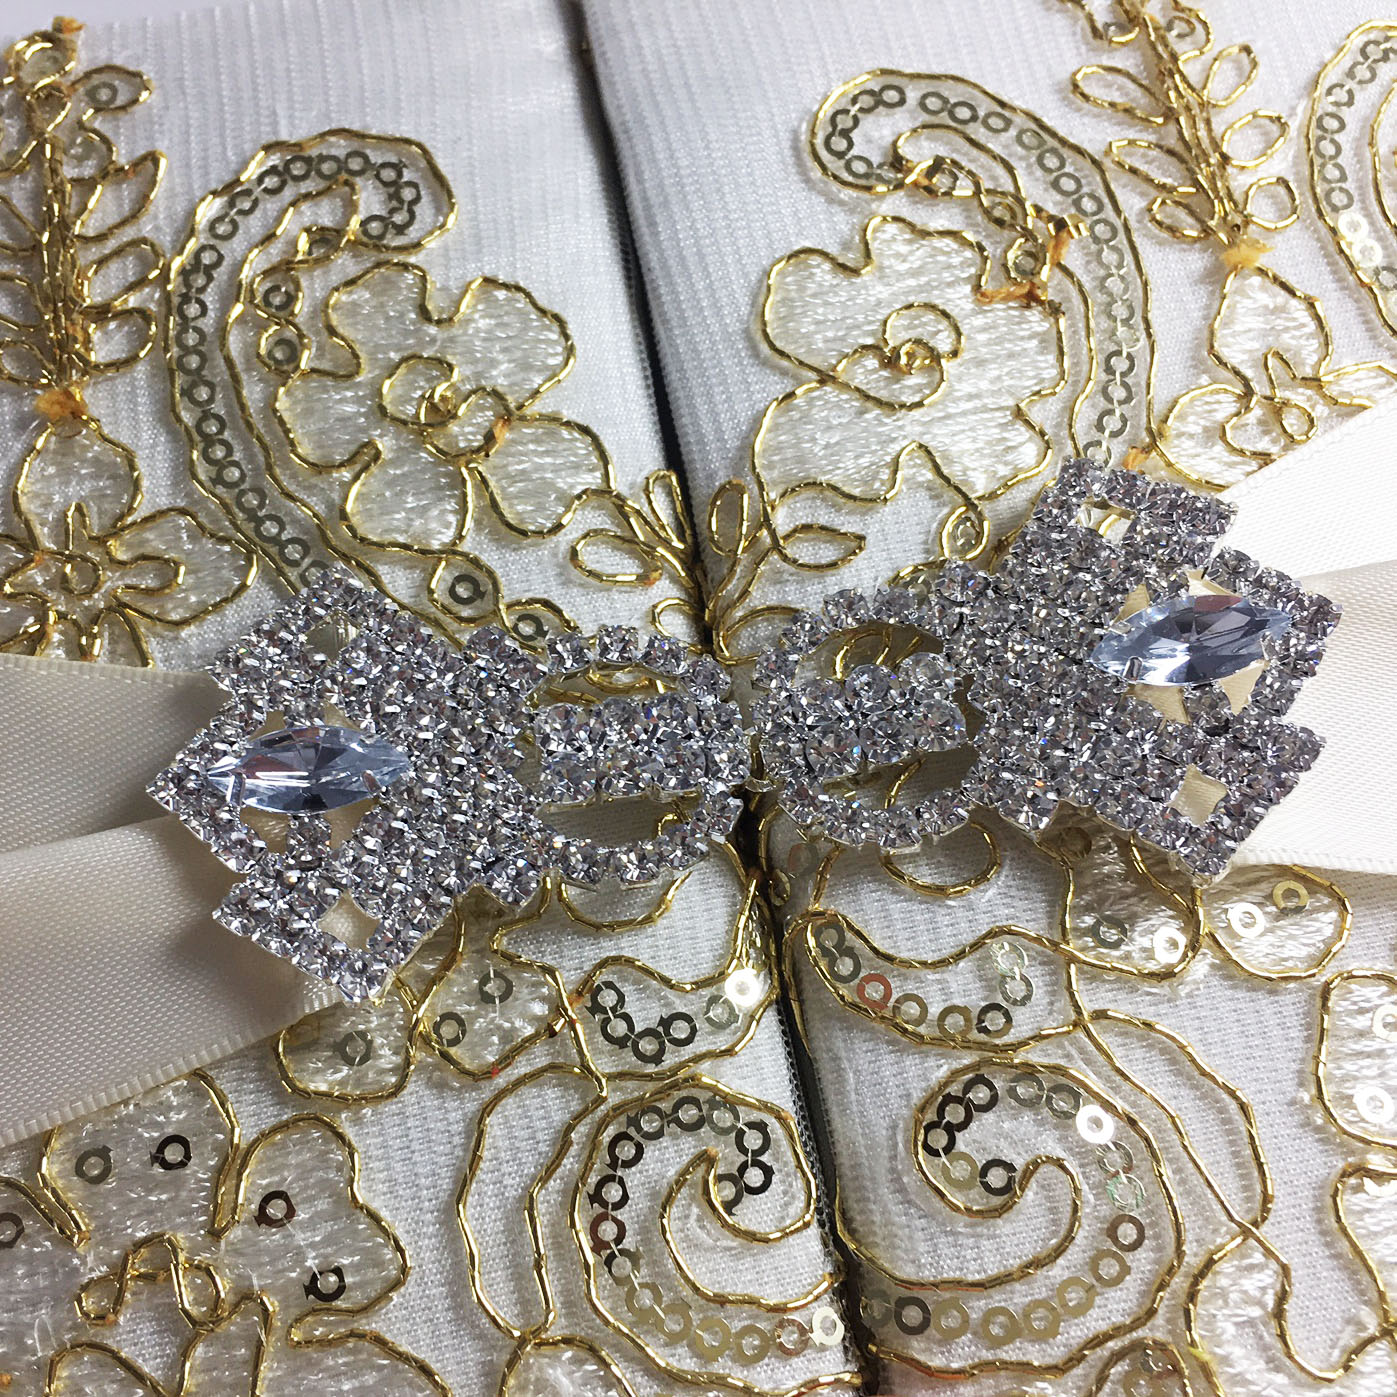 Wedding Invitations With Lace: TWO DOOR POCKET FOLD INVITATION WITH DOORS AND BOW